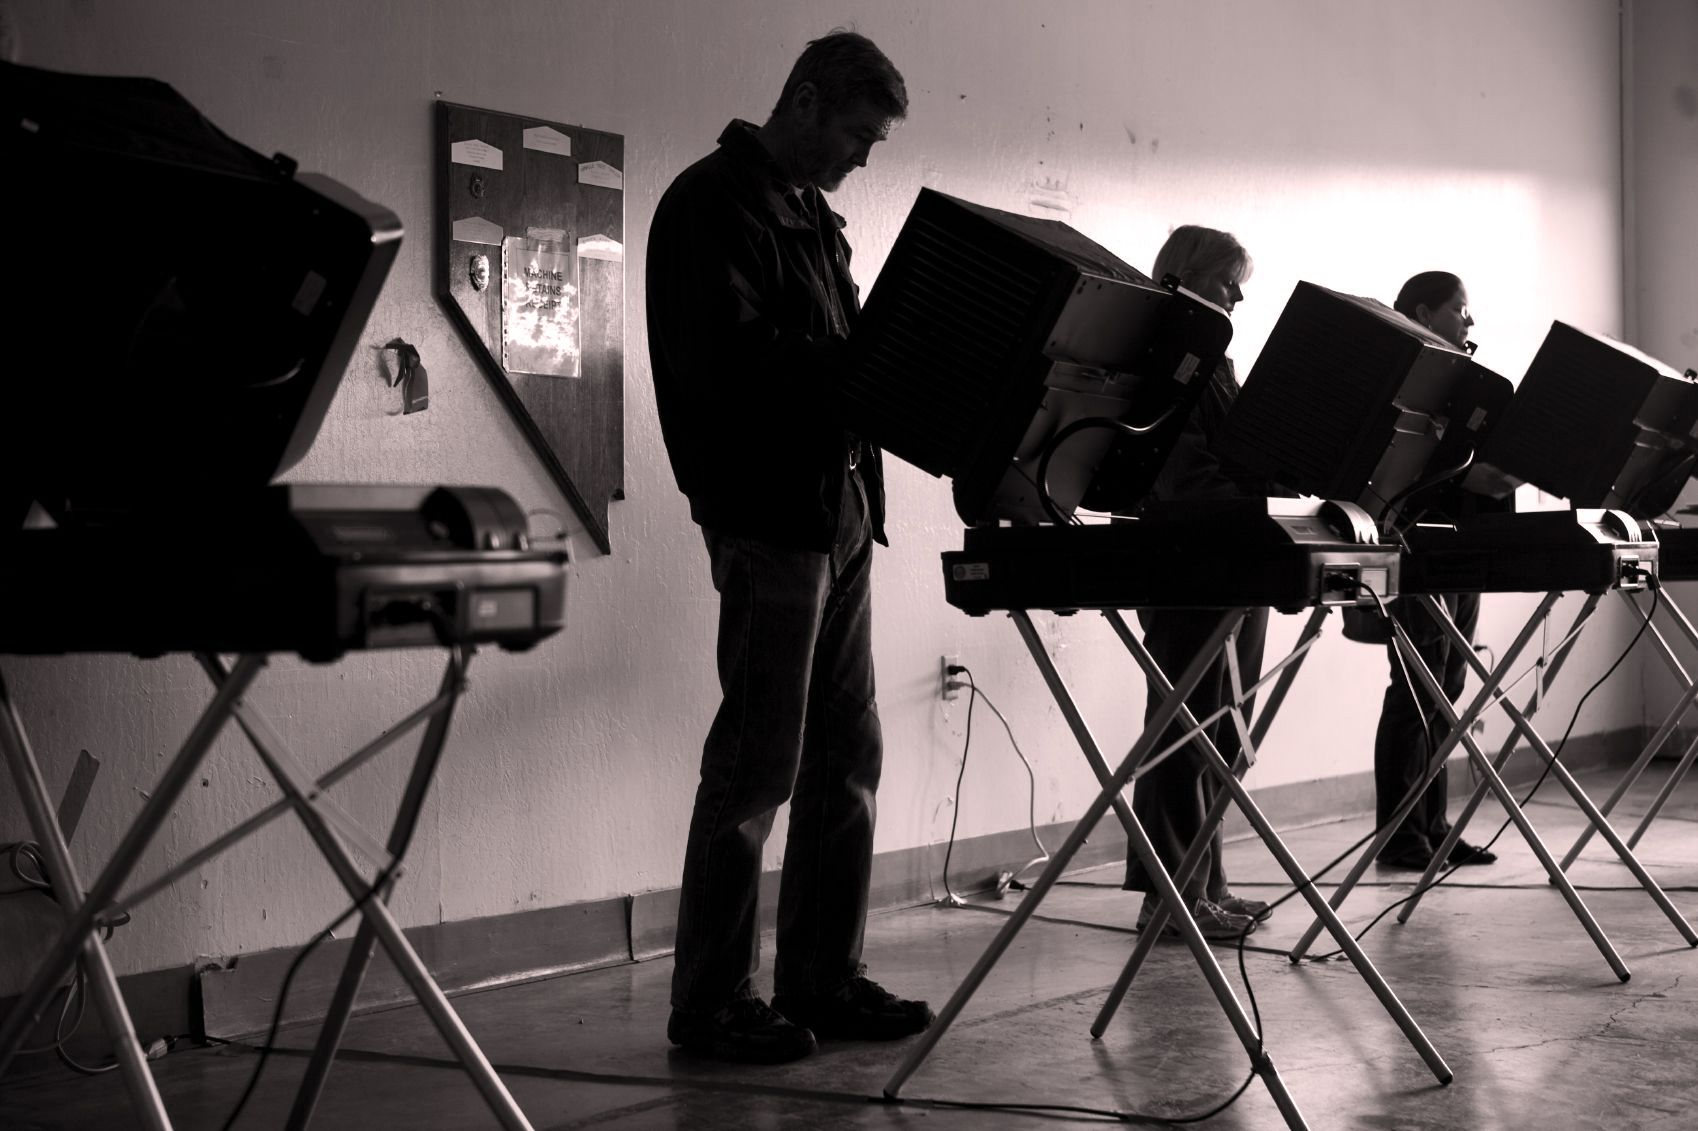 voter fraud in indiana